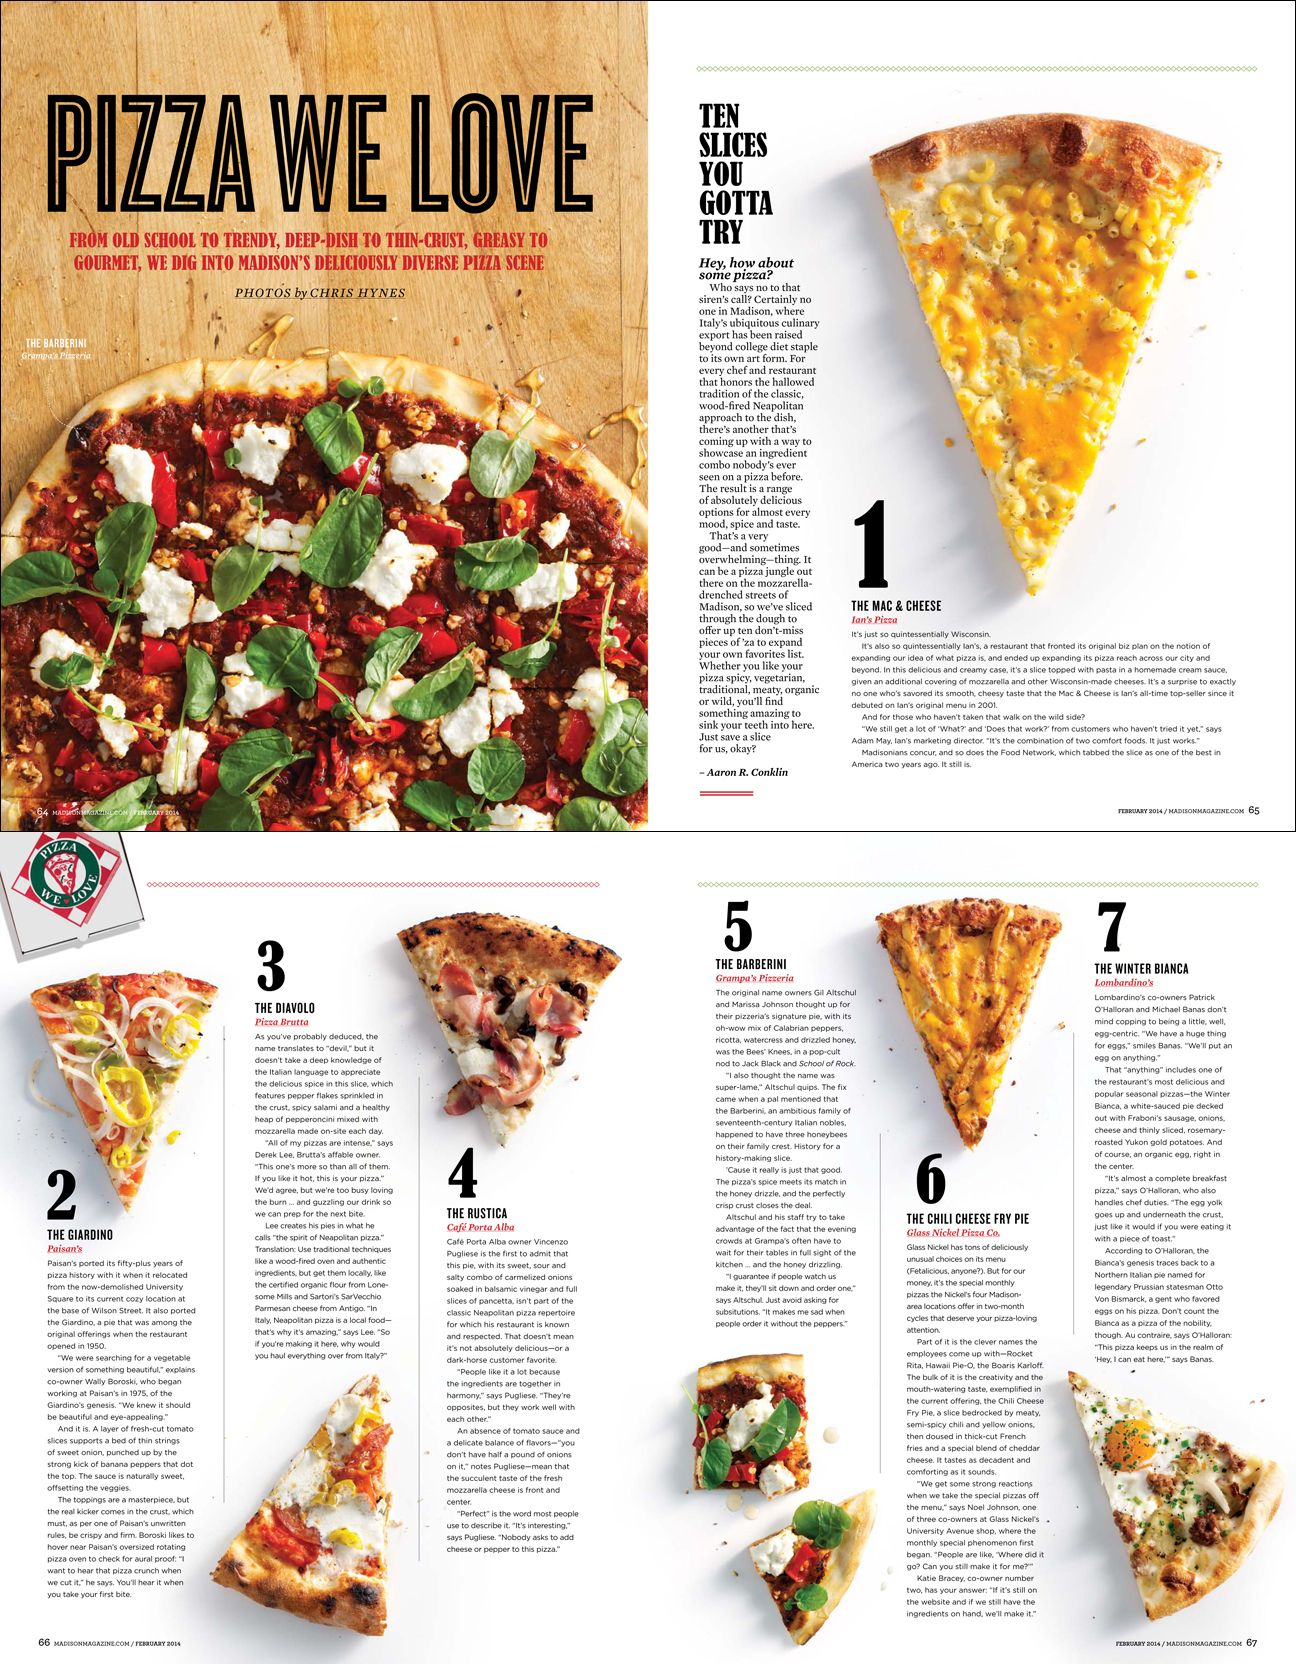 I like this page layout for this pizza magazine. I like how simple and easy it gives the information.